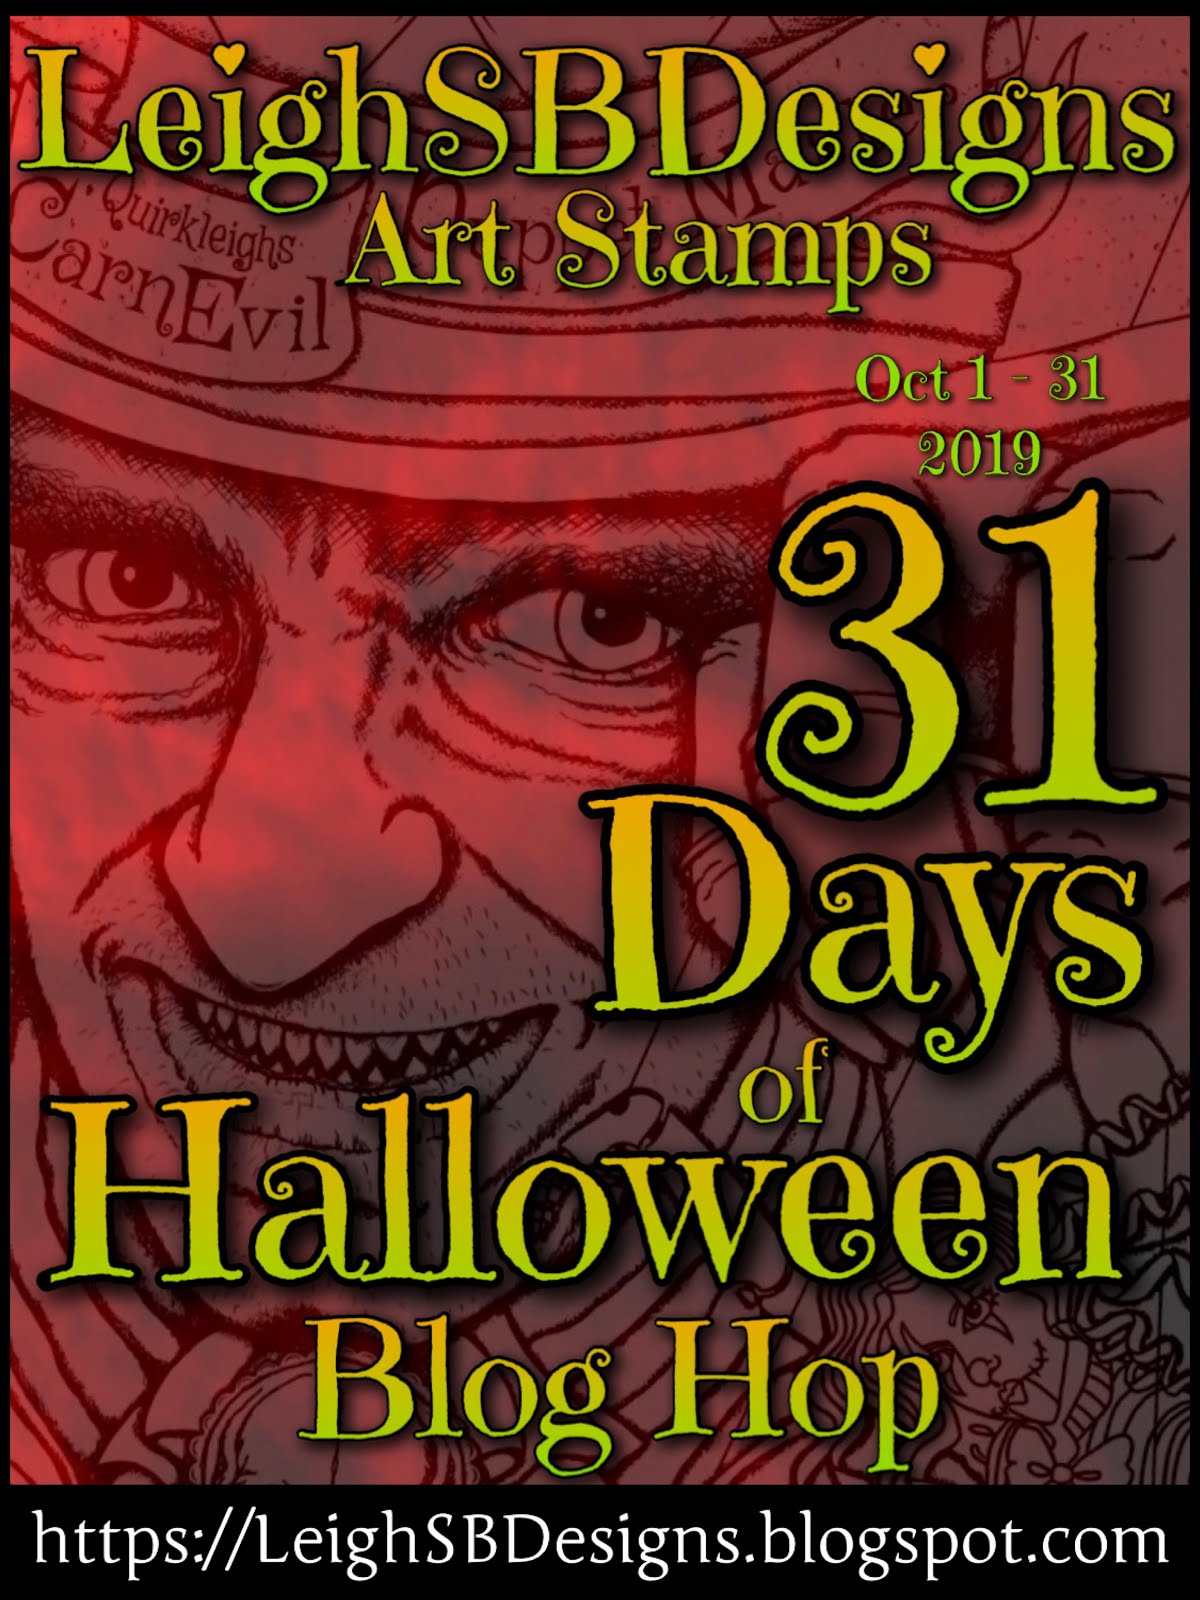 31 Days of Halloween at Leigh S-B Designs  - Begins Oct. 1, 2019